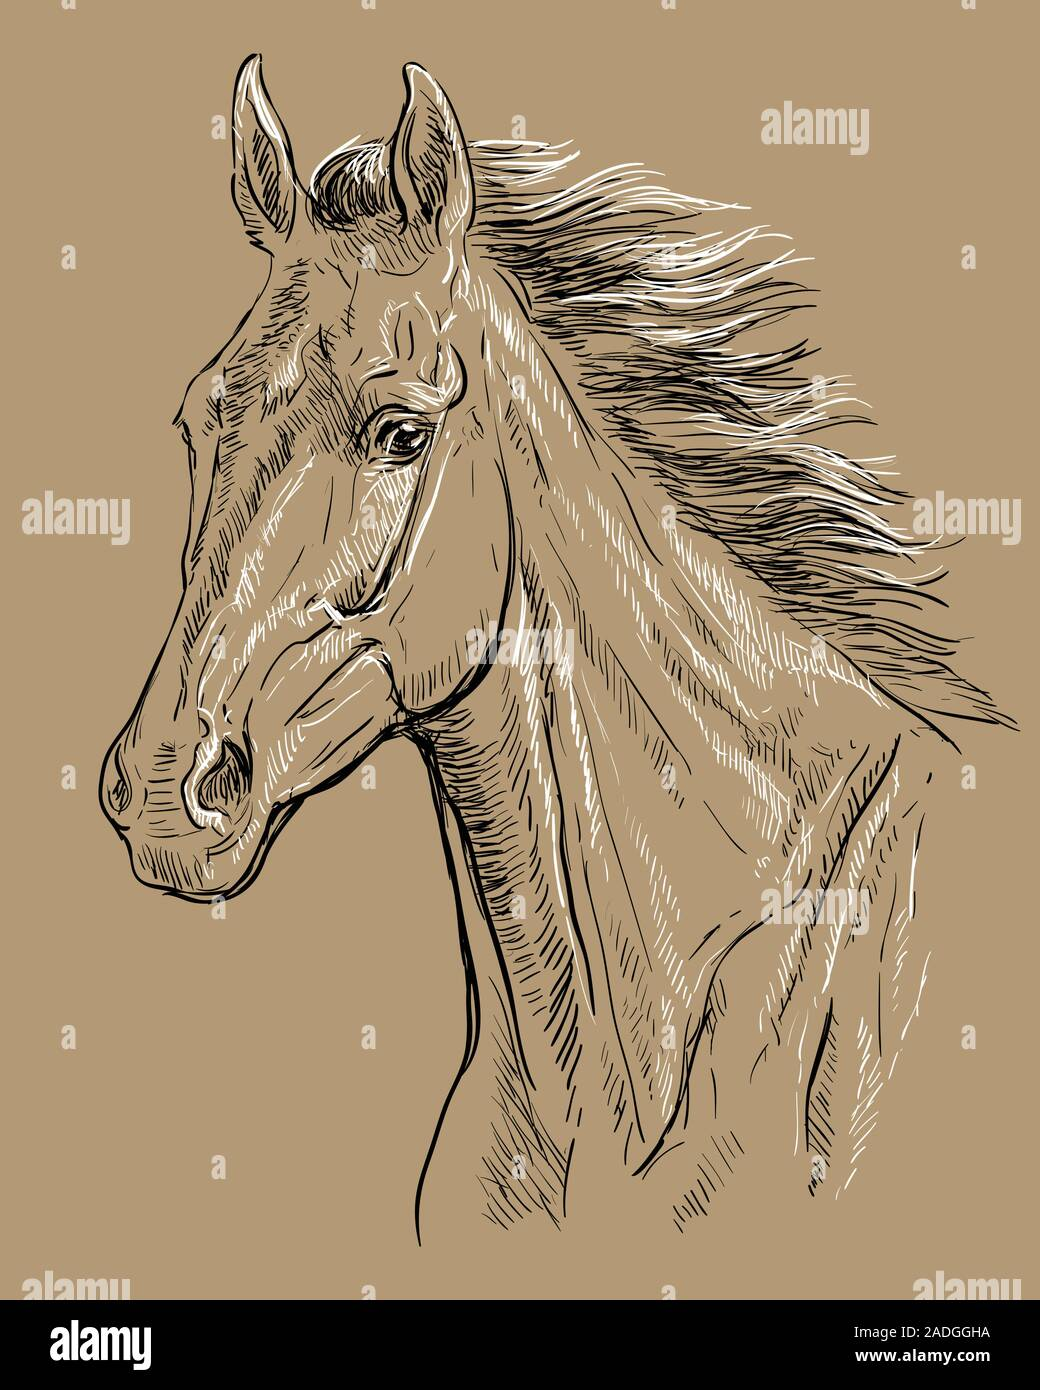 Hand Drawing Horse Portrait Horse Head With Long Mane In Black And White Colors Isolated On Beige Background Vector Hand Drawing Illustration Retro Stock Vector Image Art Alamy